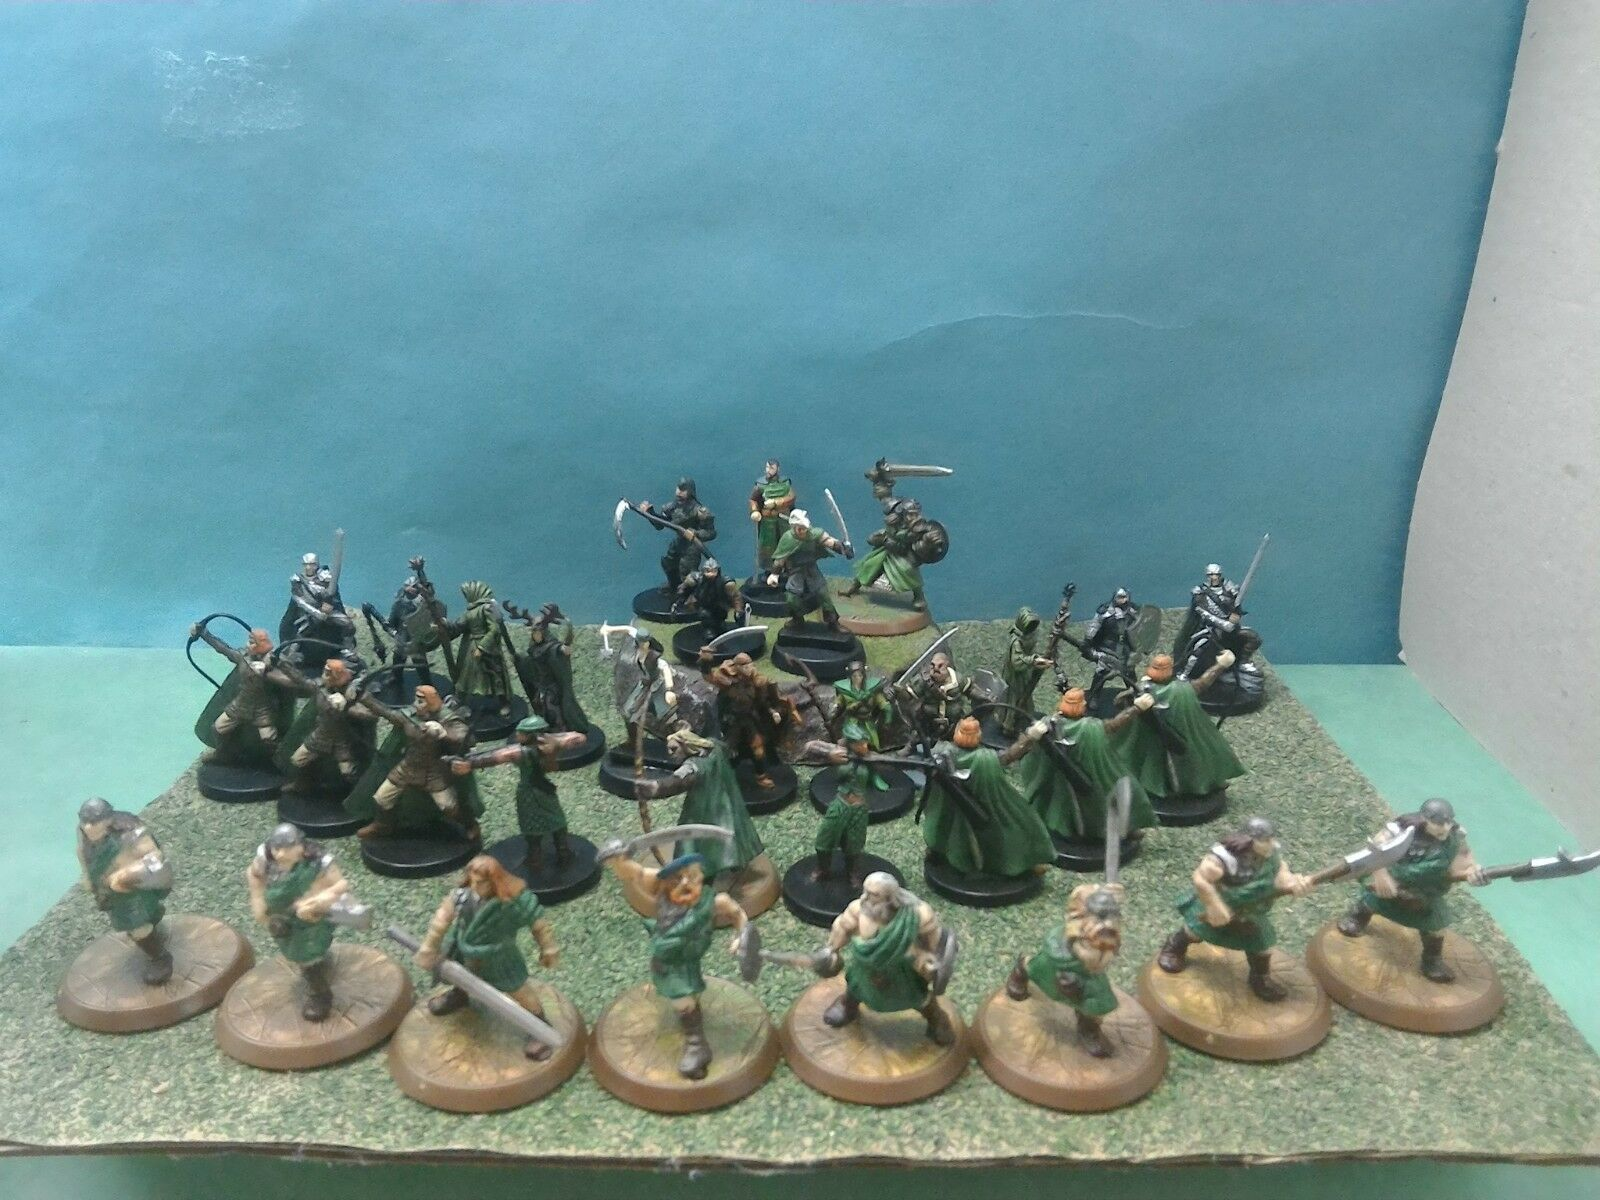 Dungeons & Dragons or Pathfinder miniatures The Green Cult of the Emerald Claw